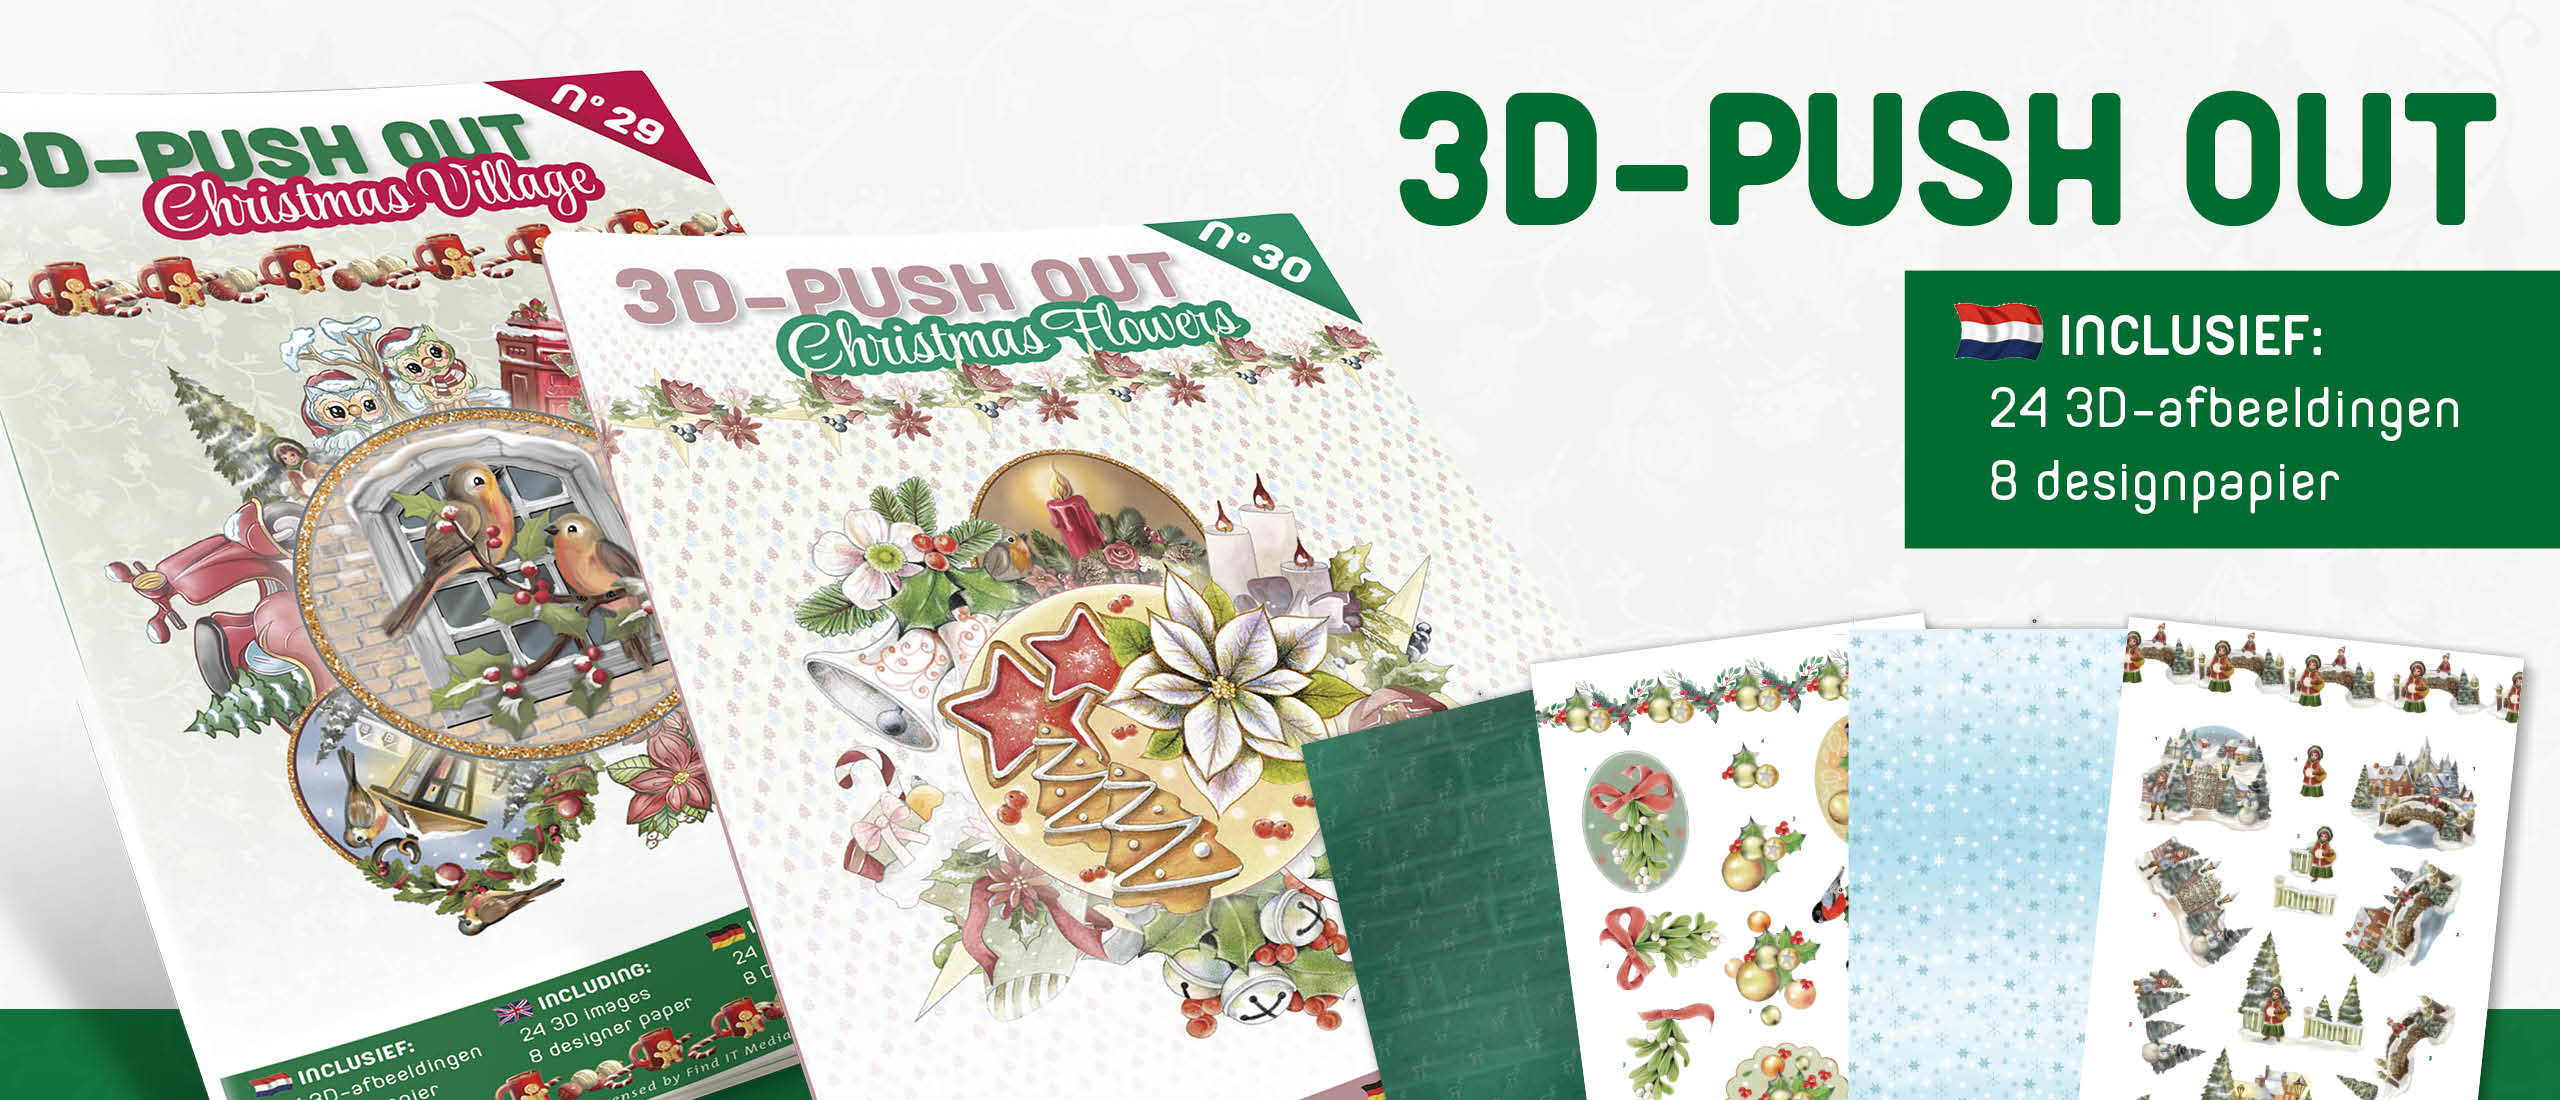 3D Push Out book 29-30 Christmas Village and Christmas Flowers